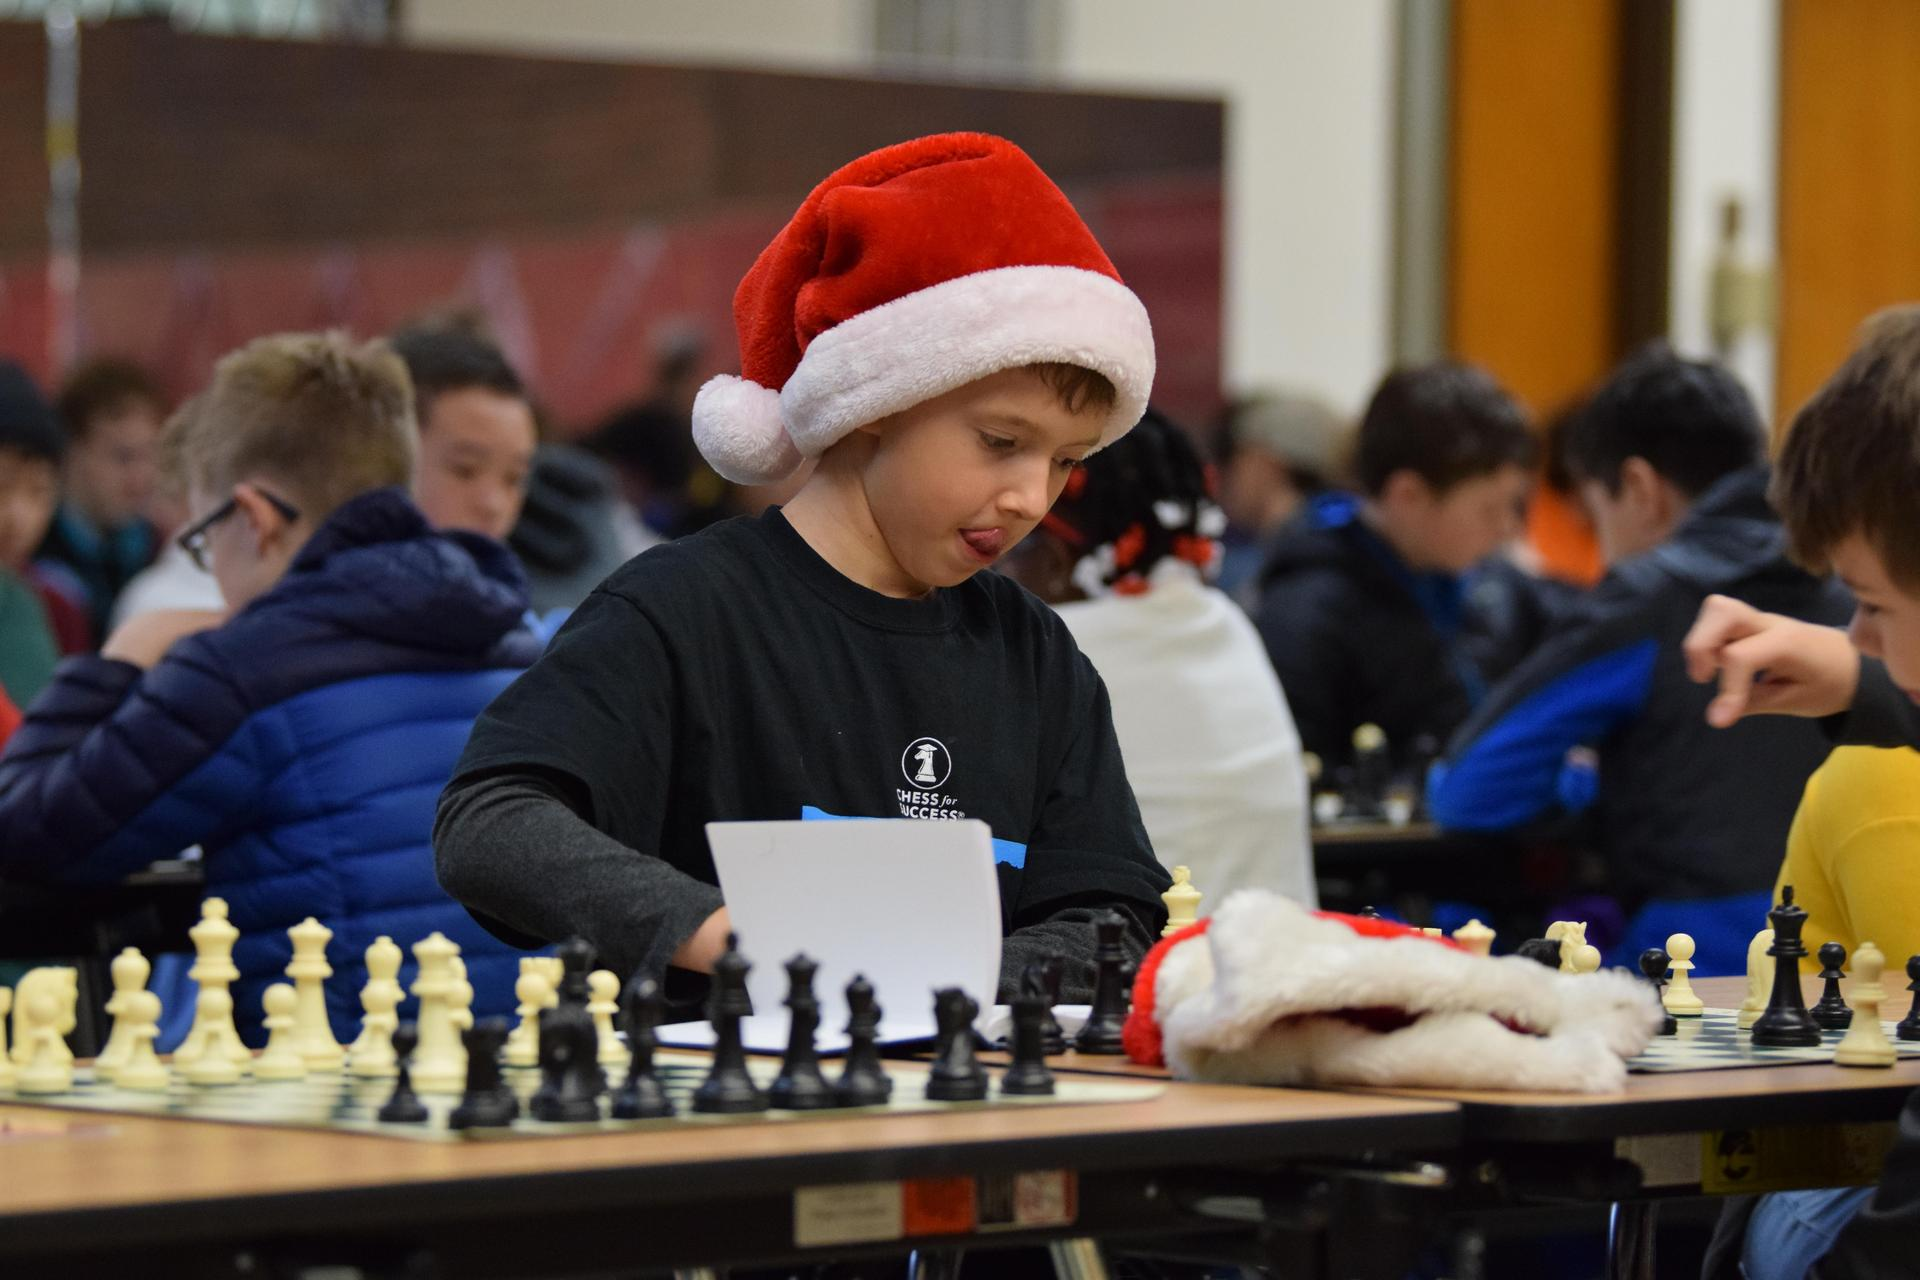 young boy playing chess